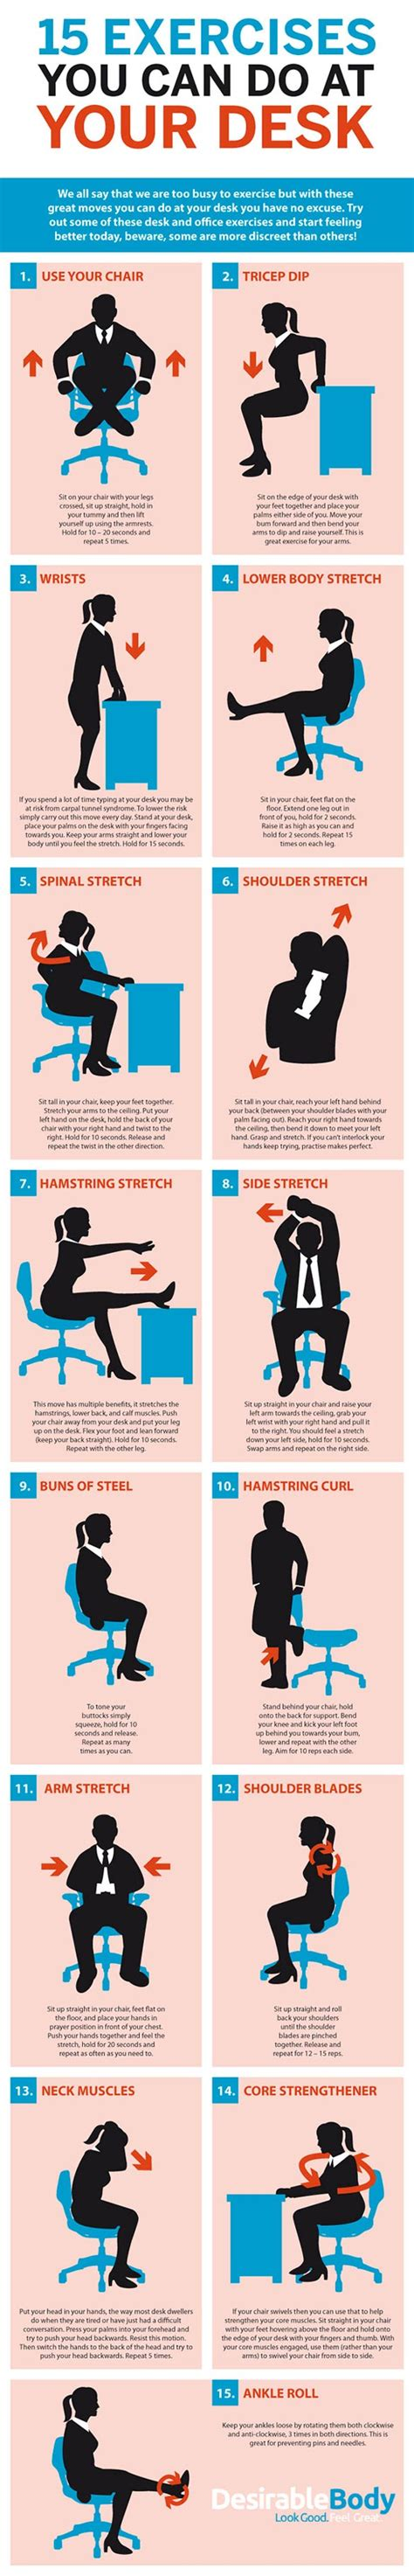 Exercises To Do At Desk by 15 Exercises You Can Do At Your Desk